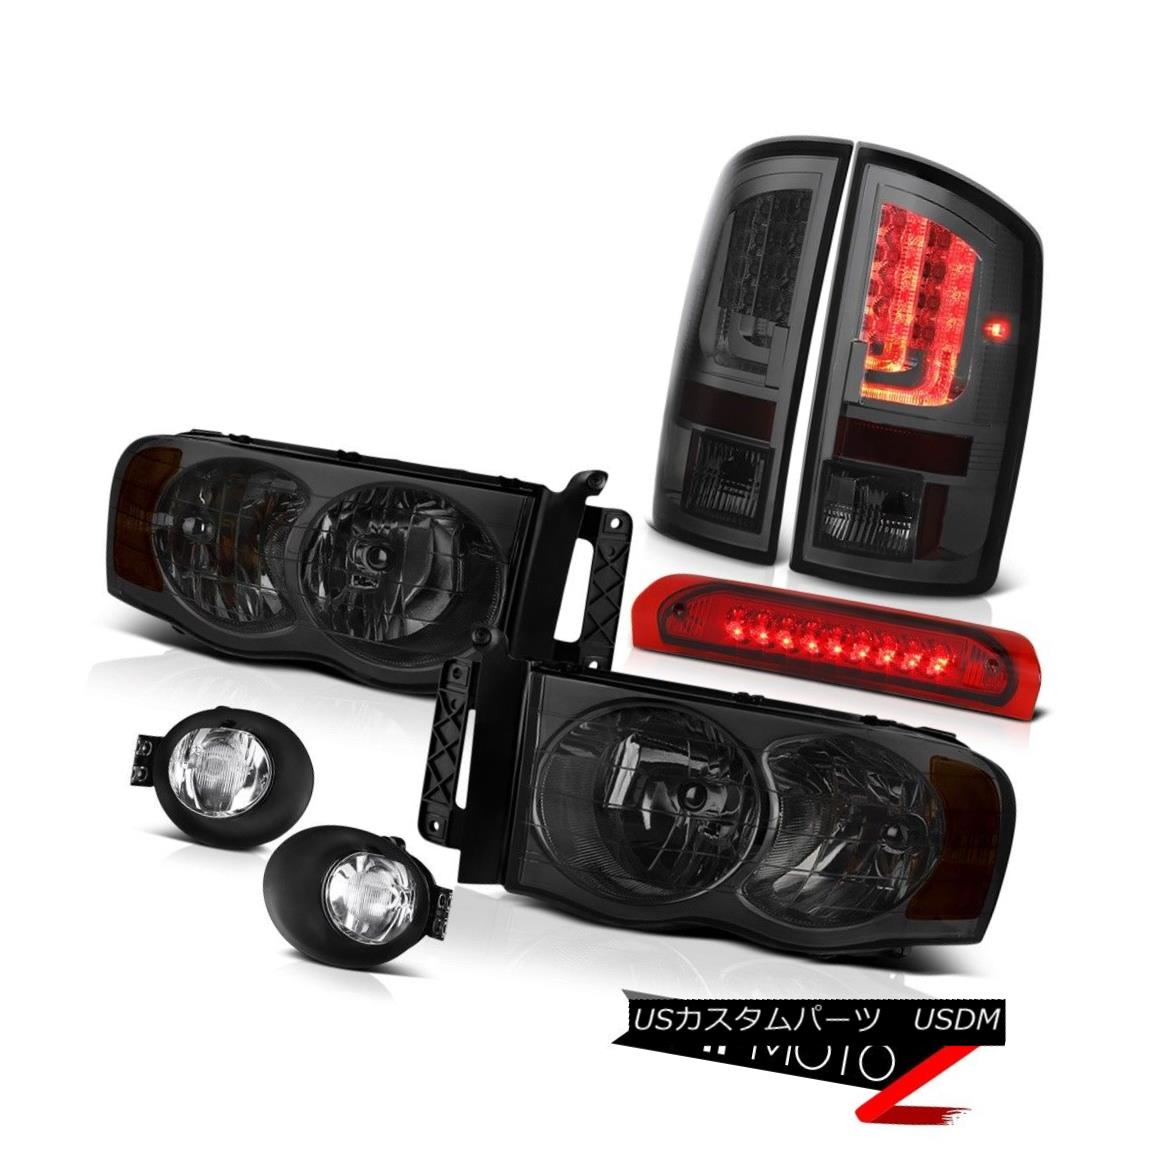 テールライト 2003-2005 Dodge Ram 1500 3.7L Tail Lamps Fog Headlights Red High STop Lamp LED 2003-2005 Dodge Ram 1500 3.7Lテールランプ霧のヘッドライトレッドハイSTOPランプLED